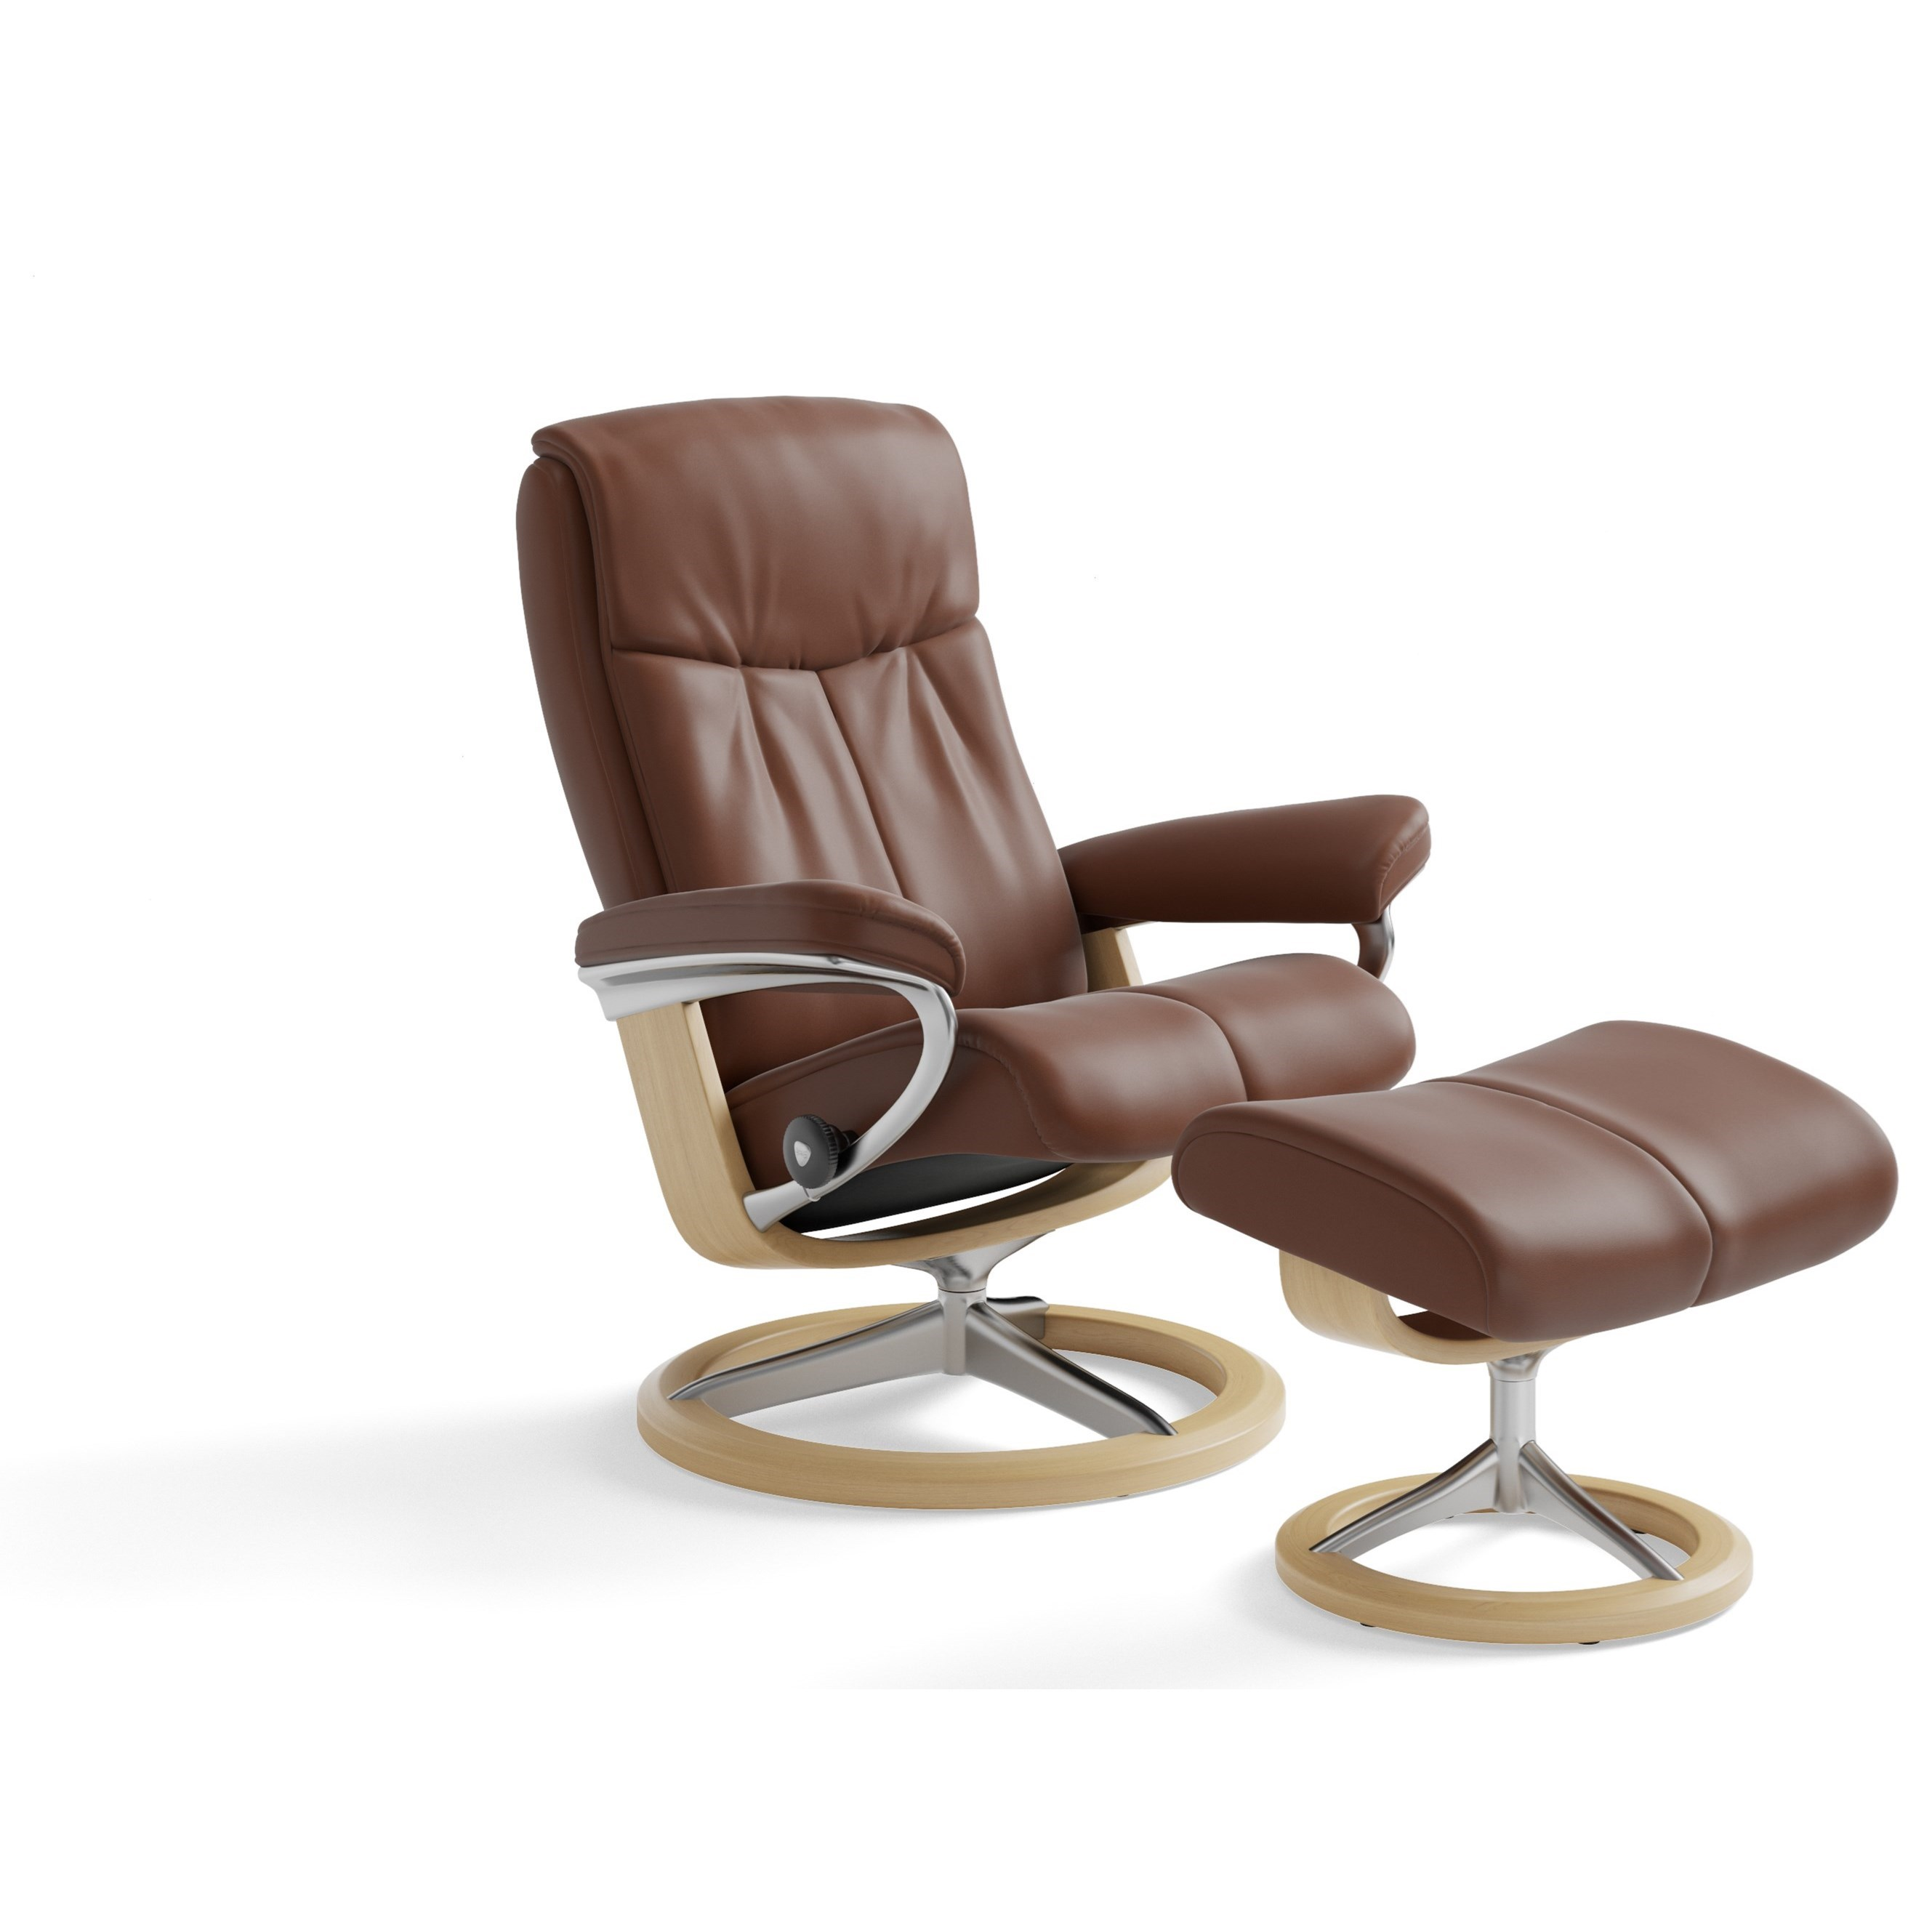 Stressless Furniture Market Harborough Stressless Furniture Market Harborough